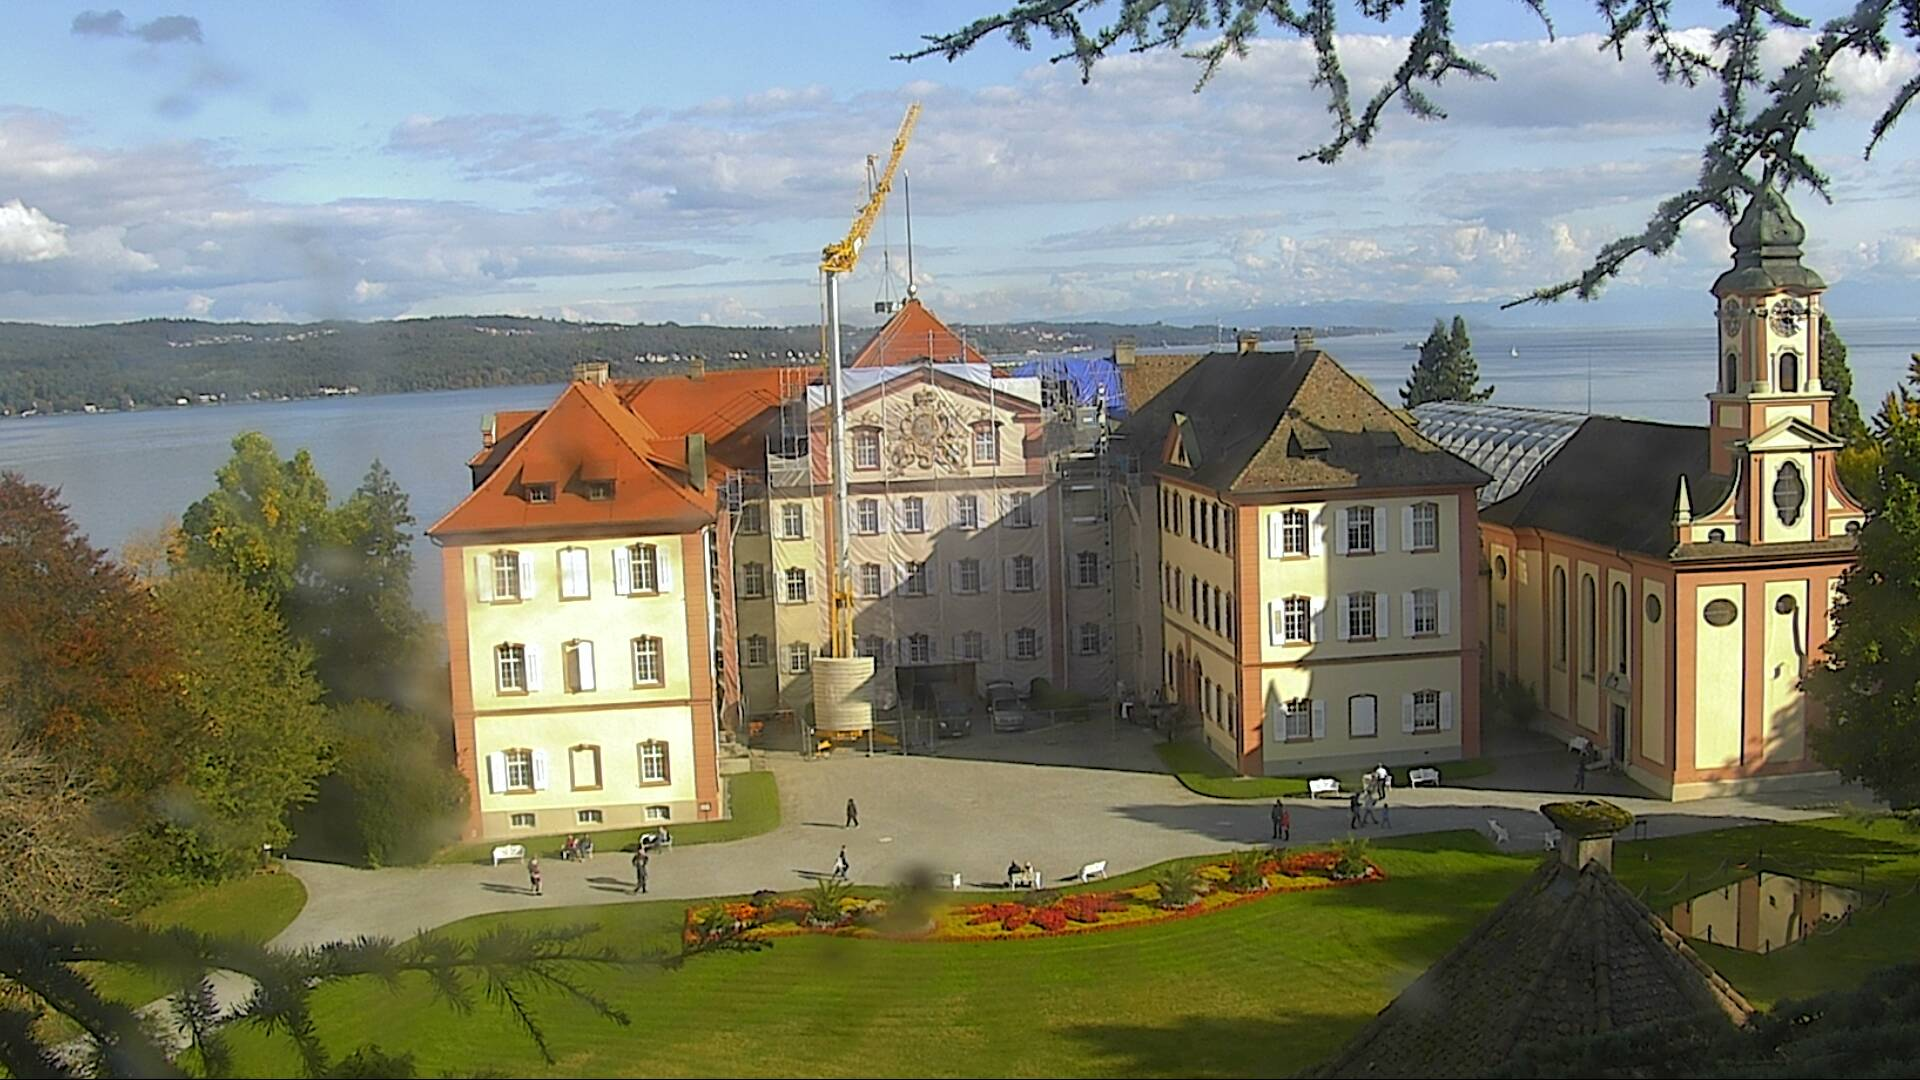 Webcam Ludwigsburg Webcam Mainau Island: Mainau Palace